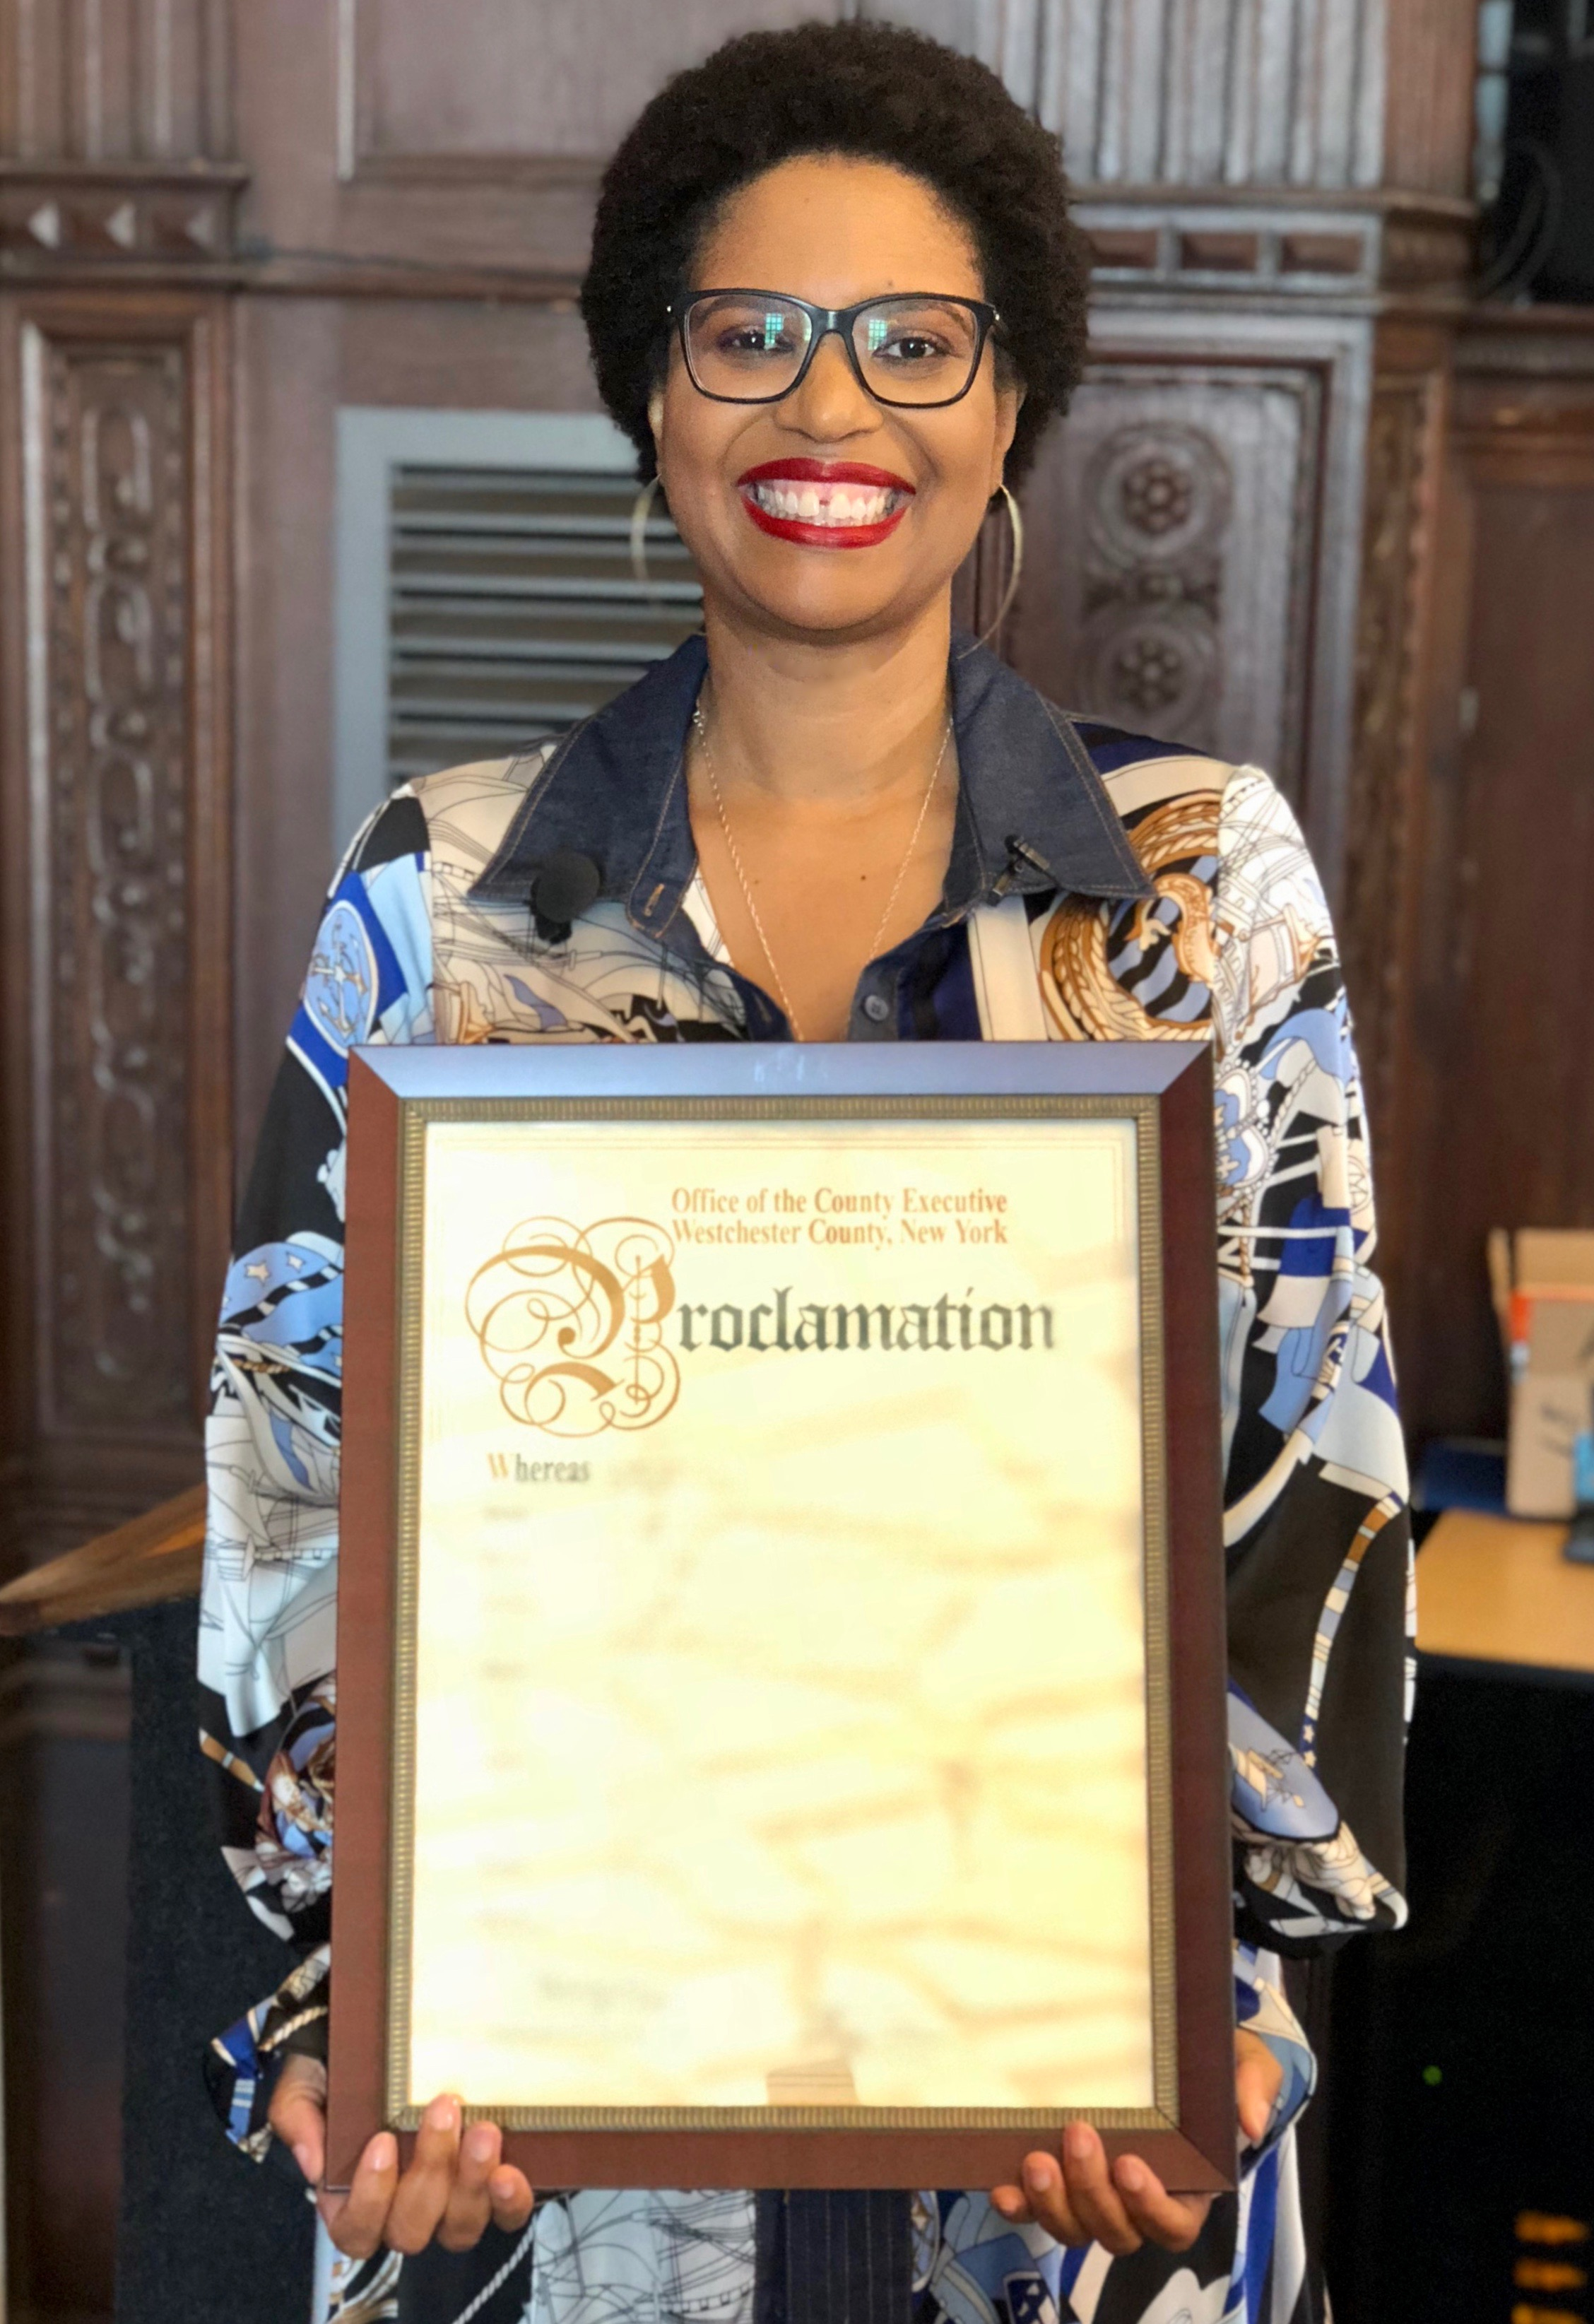 She Roars Founder, Vanessa Wakeman, receiving a Proclamation from the County Executive of Westchester, NY, in honor of her work on behalf of creating more female thought leaders.